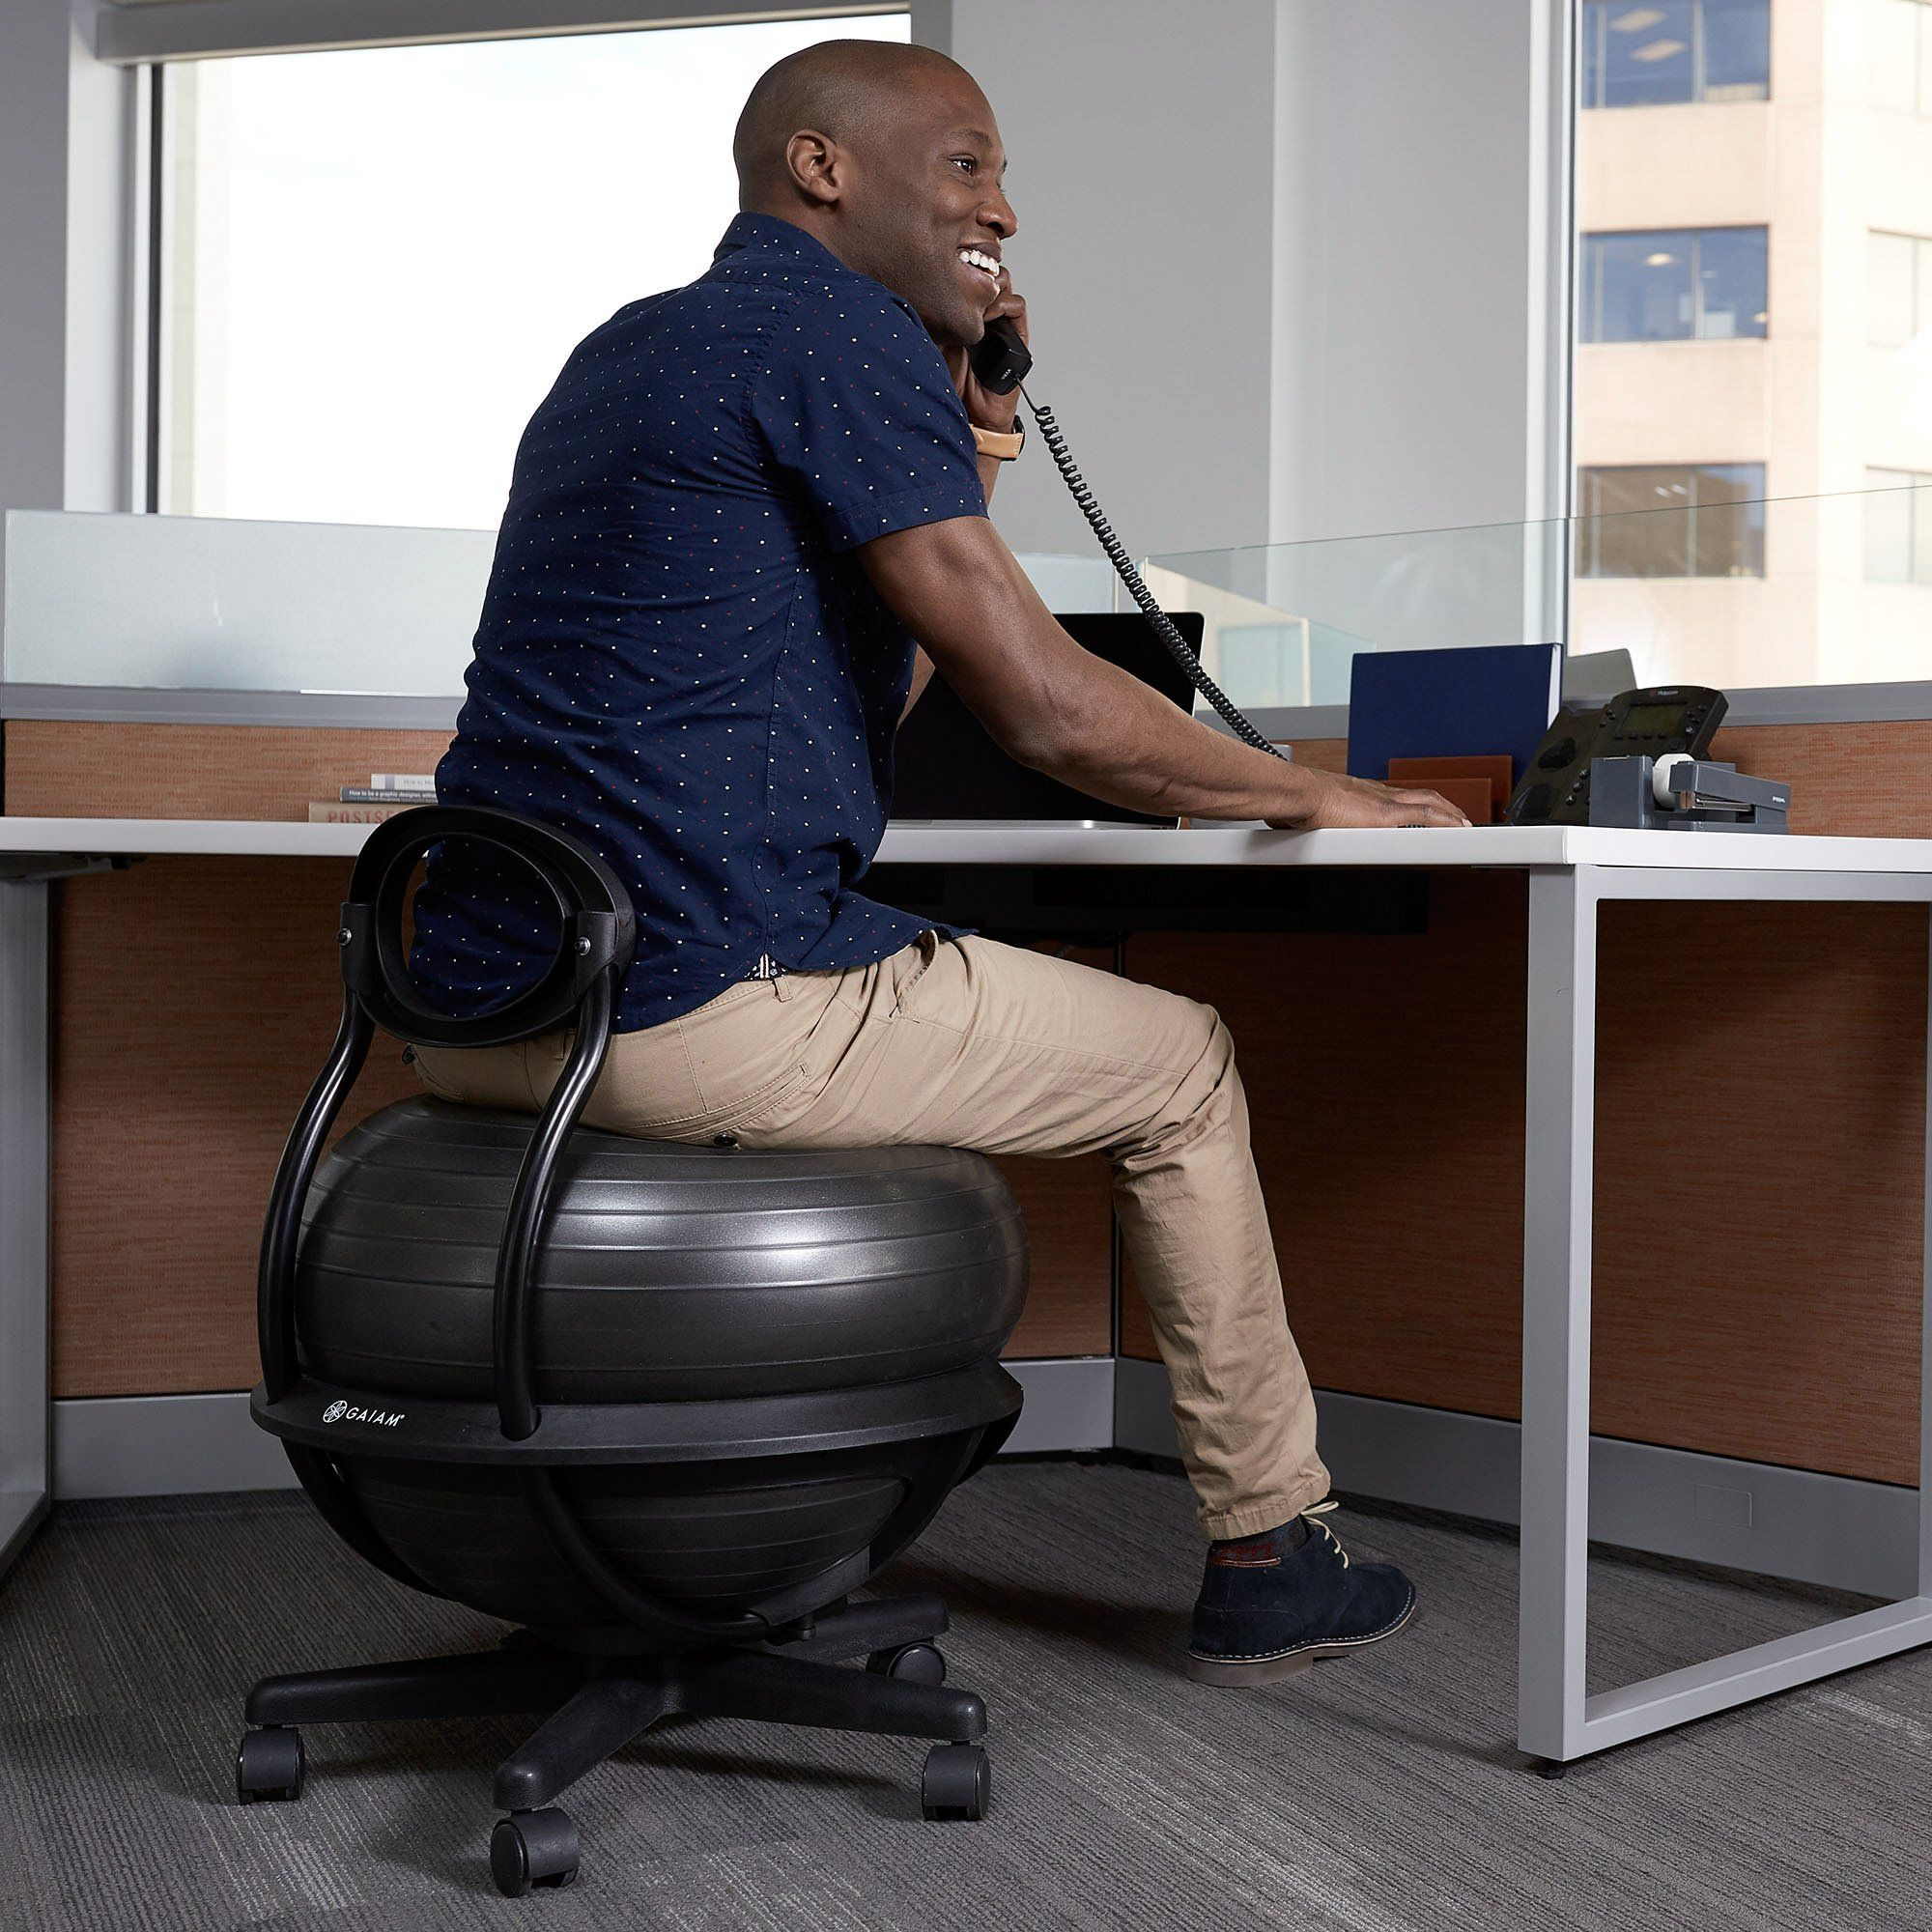 Sensational Ultimate Balance Ball Chair On Sale Now Durham Cool Forskolin Free Trial Chair Design Images Forskolin Free Trialorg